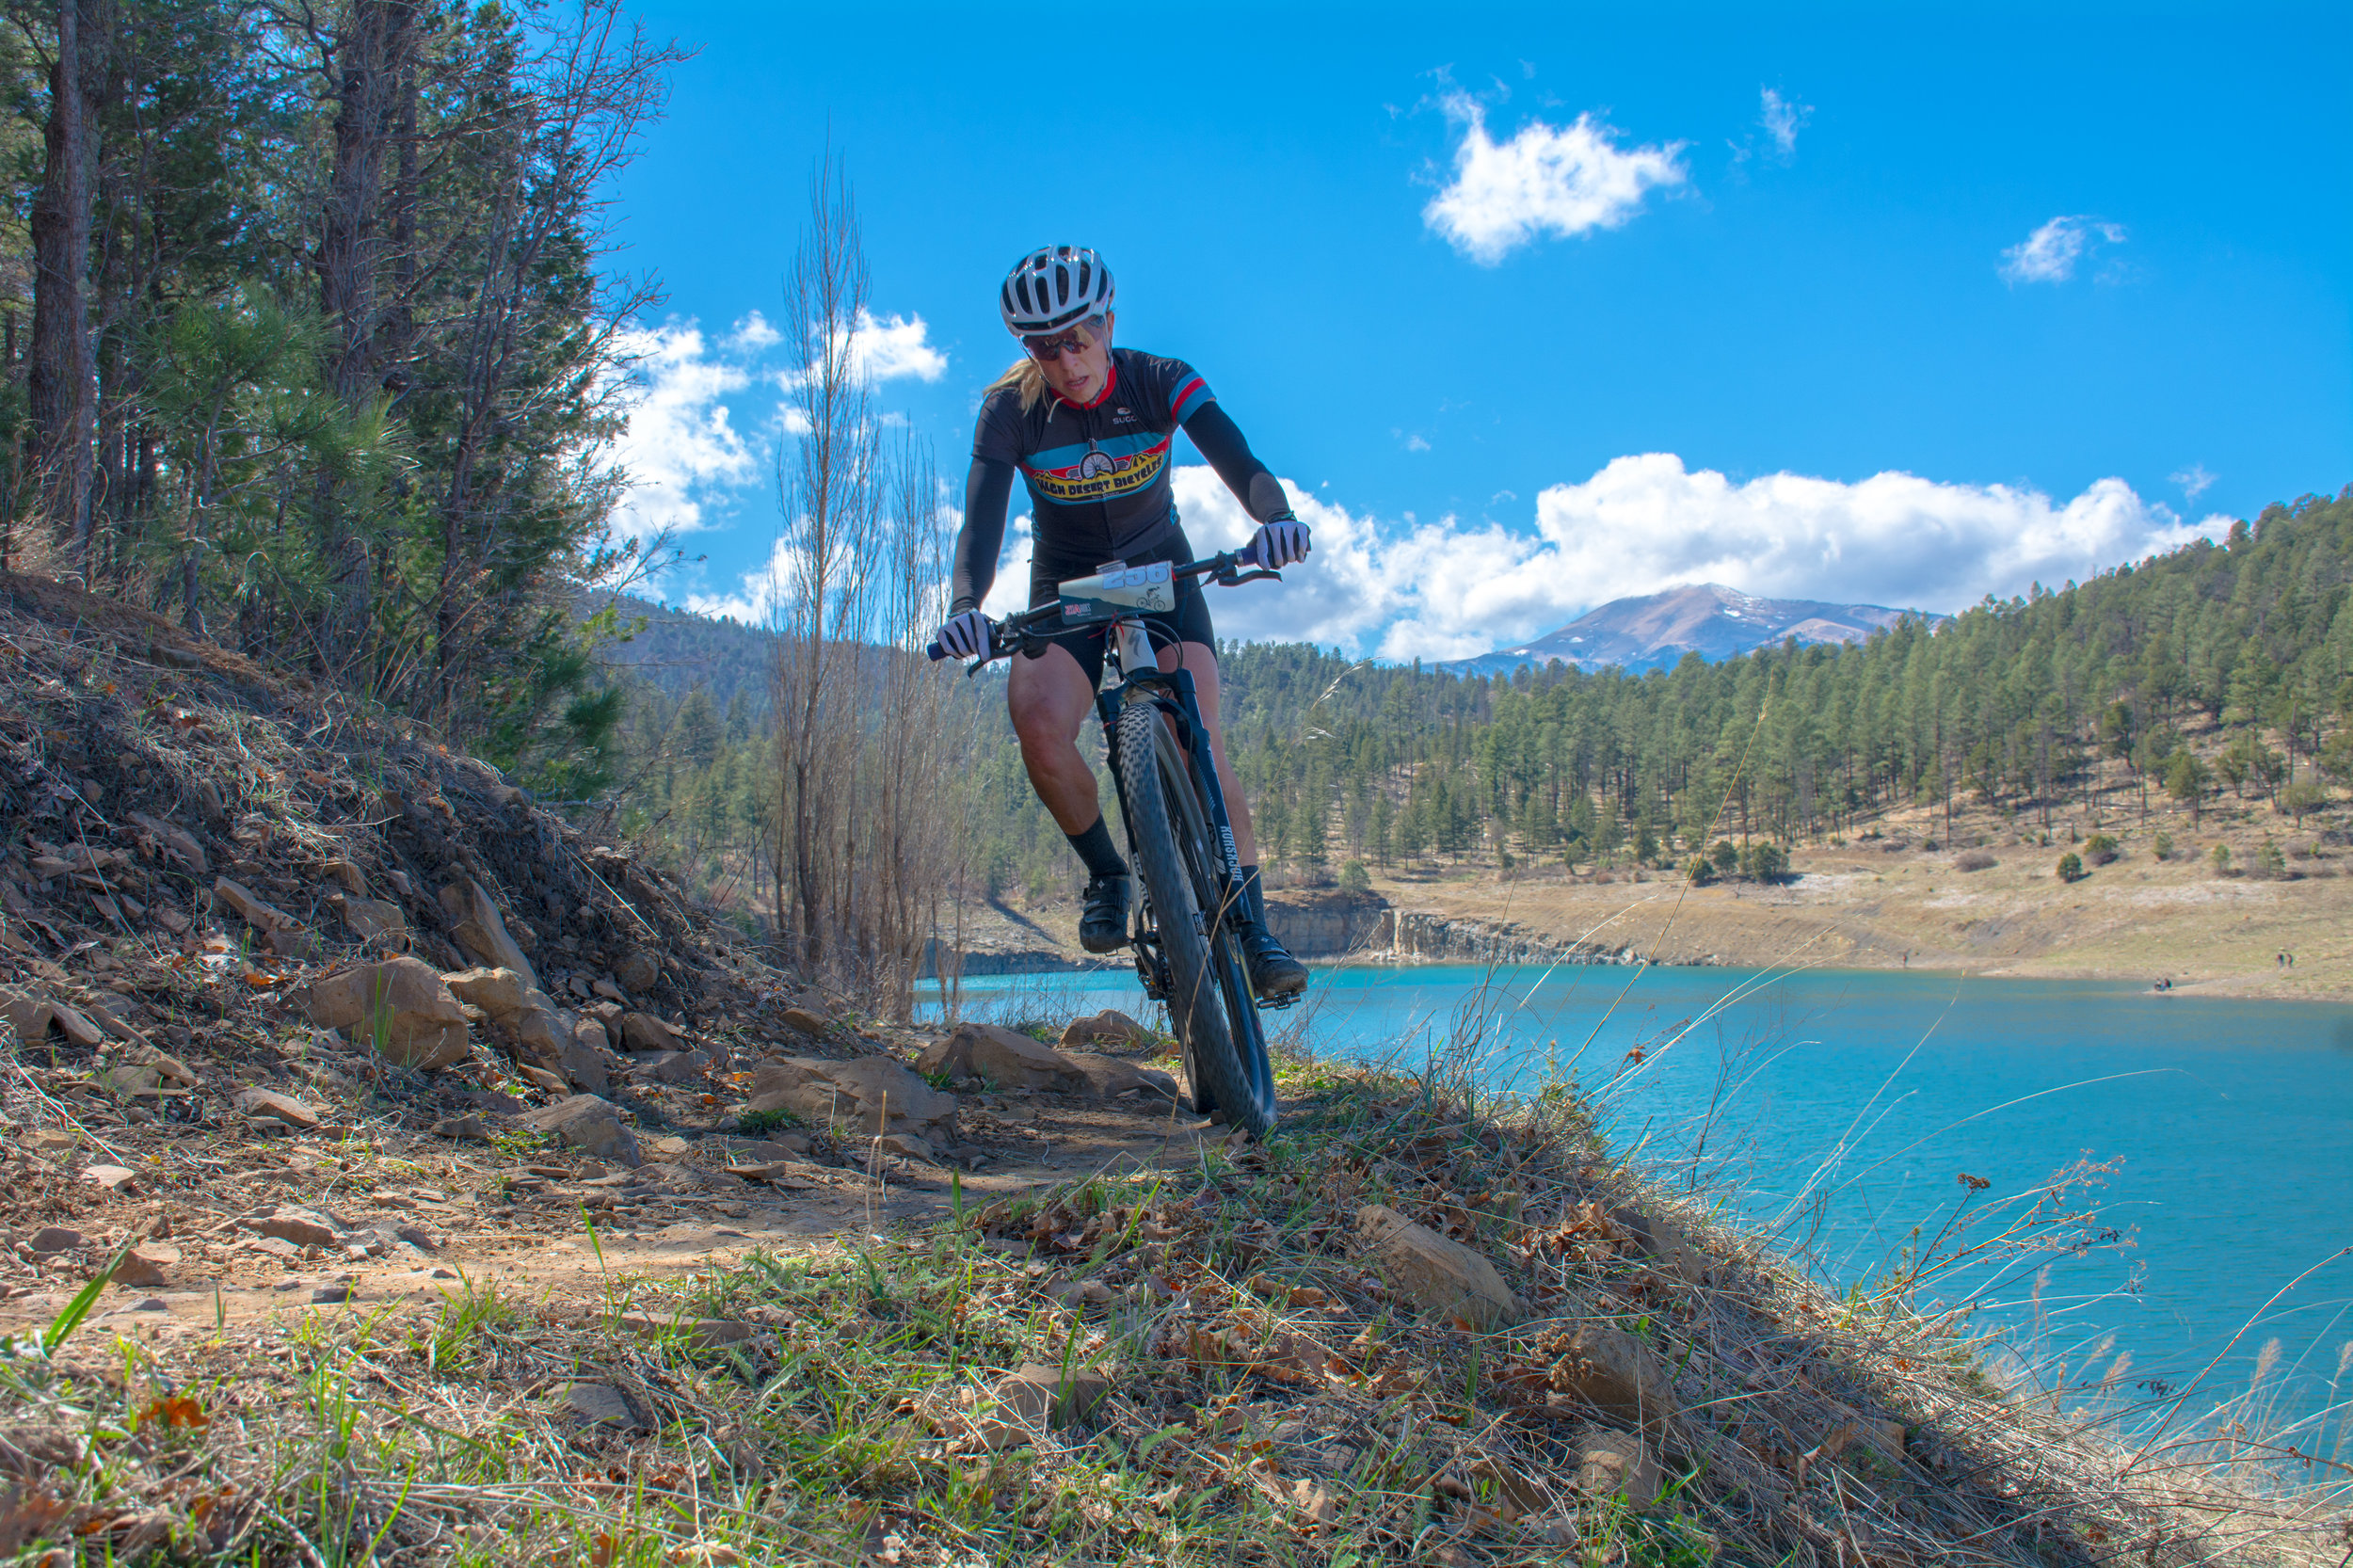 Female Mtn Bike.jpg